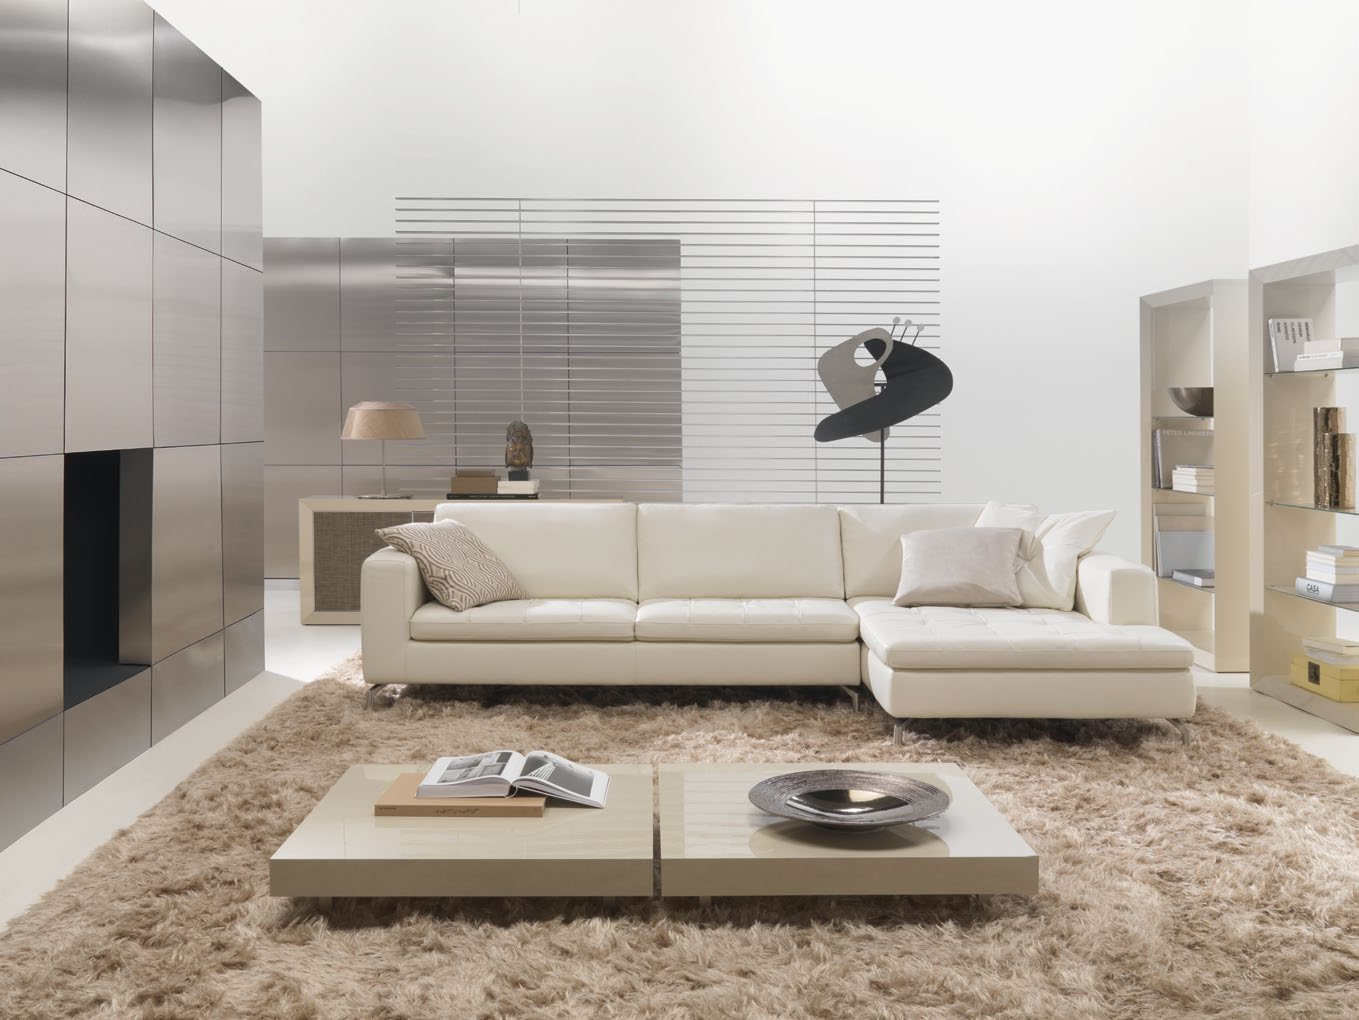 ... Room Design Ideas by NATUZZI » Bright Living Room with Savoy Sofa set